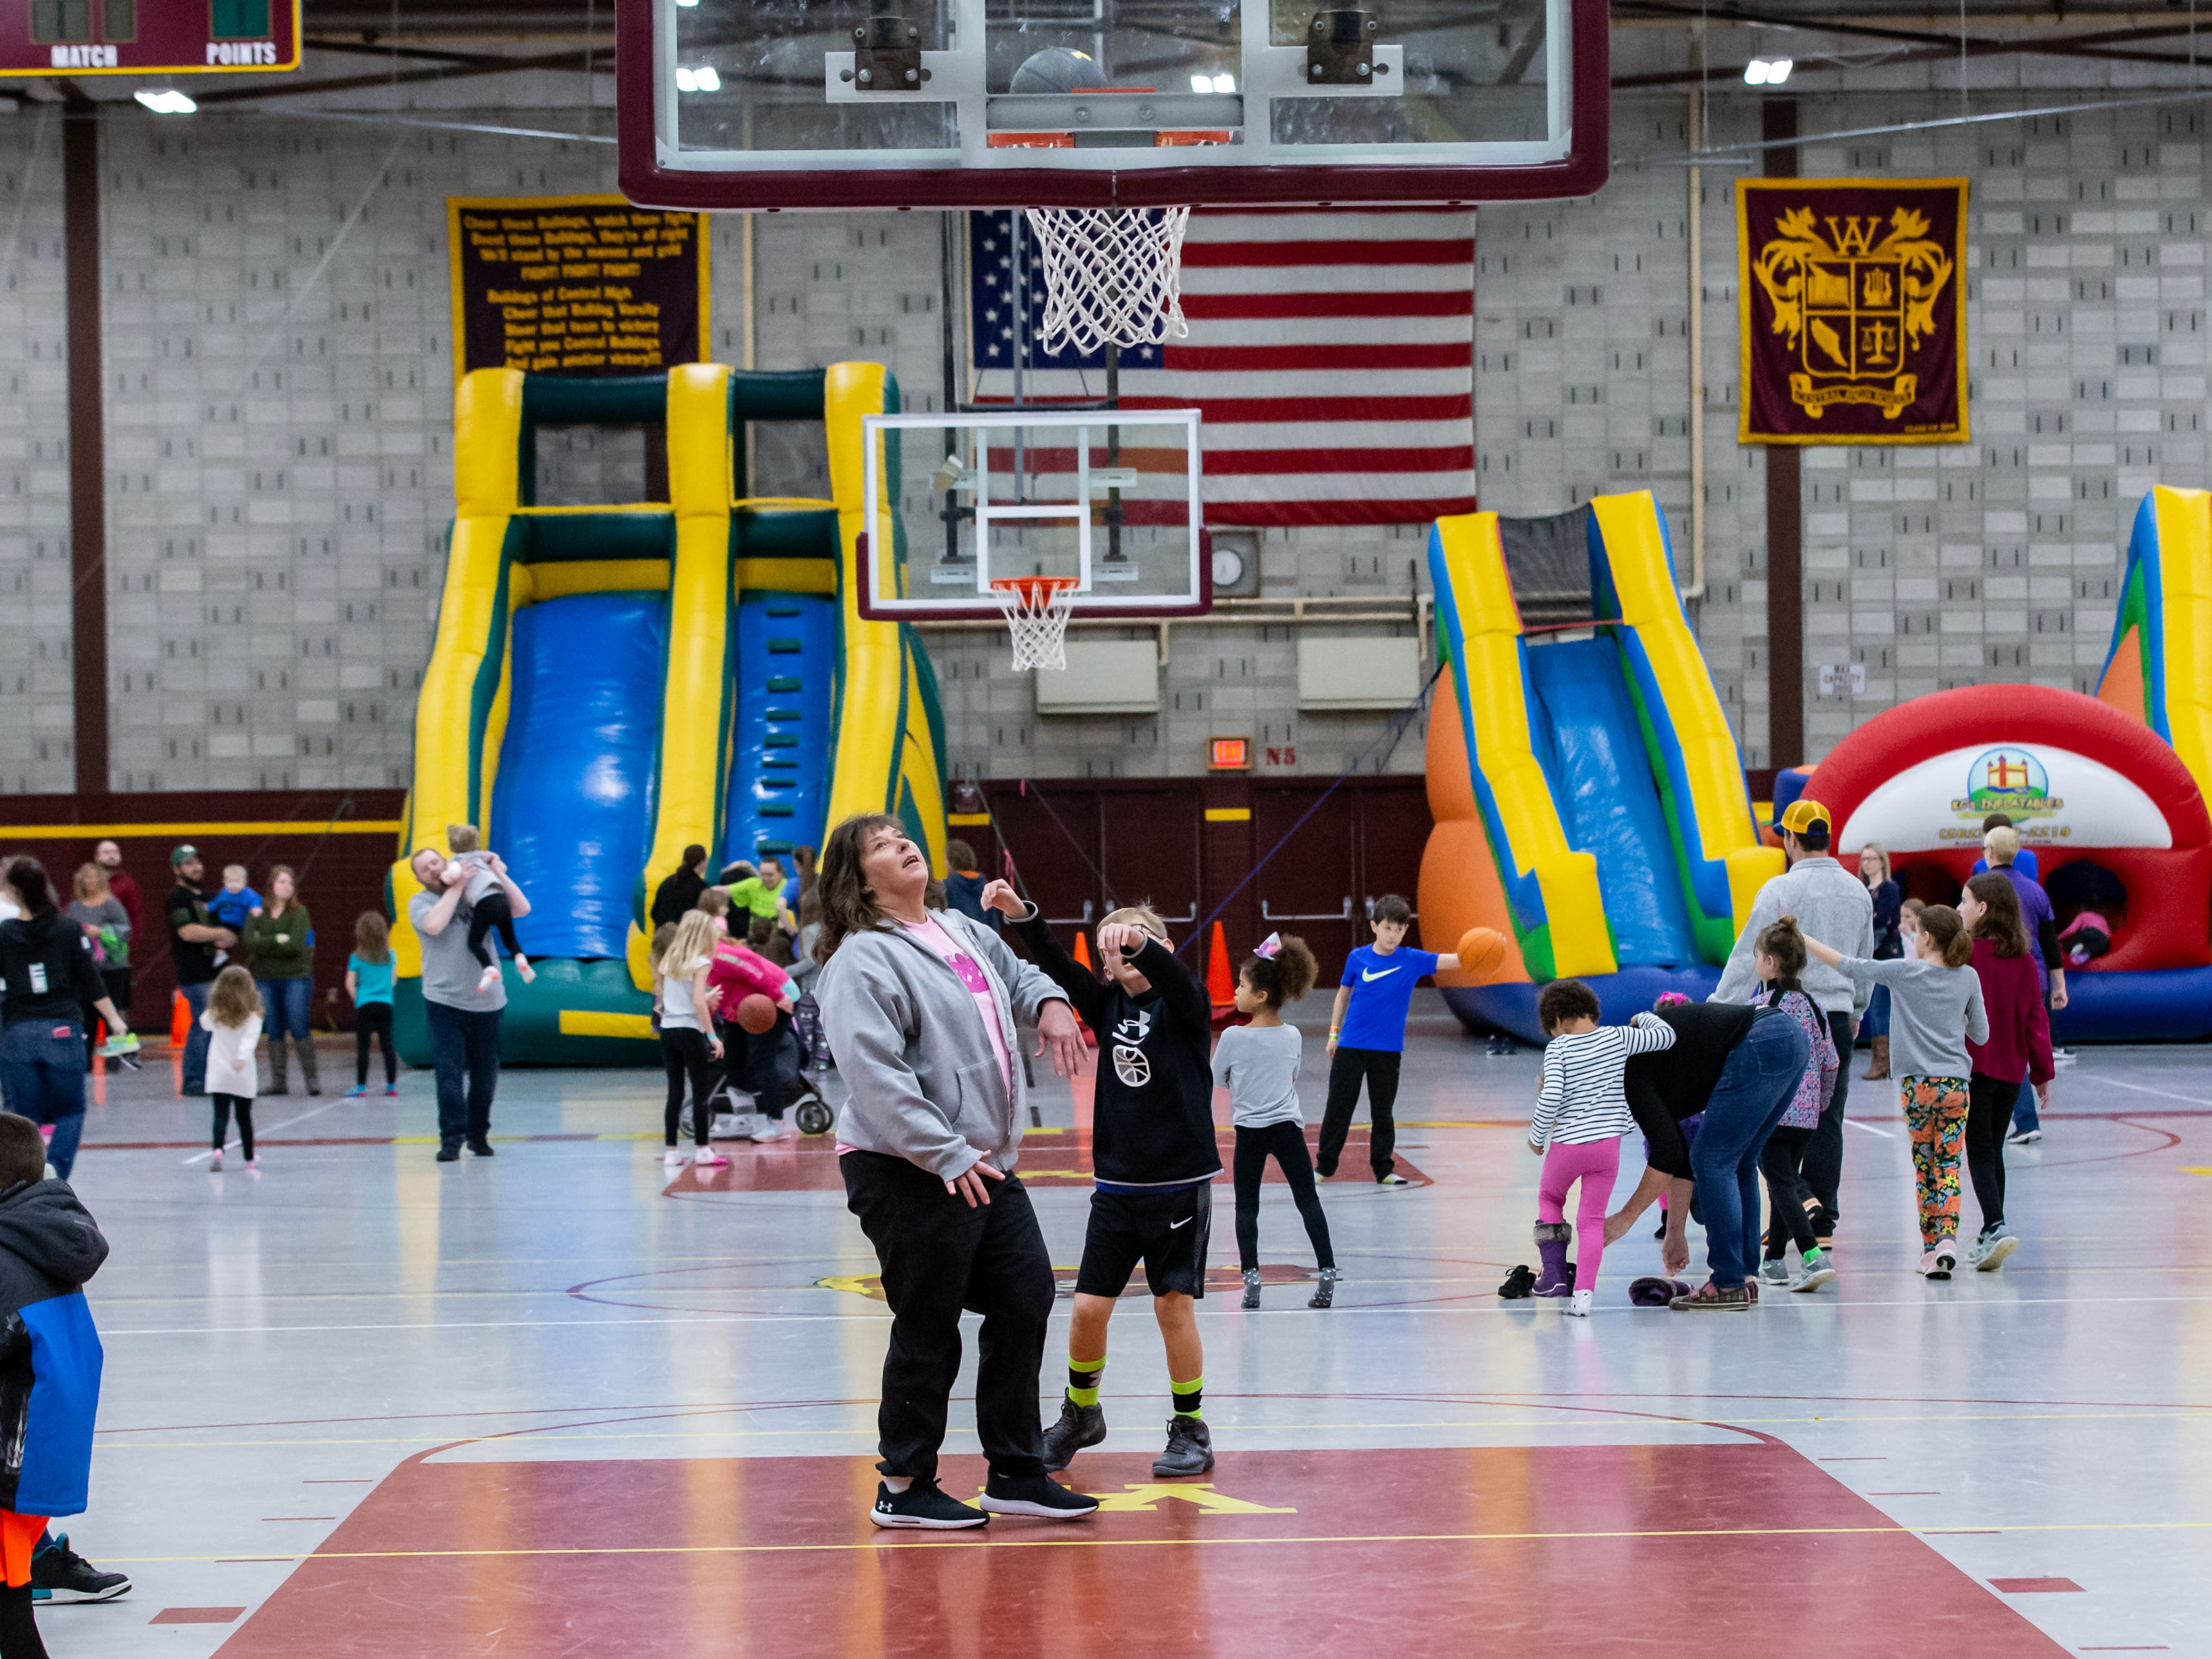 Families enjoy games, inflatables, music, swimming and more during the New Year's Eve Family Night at West Allis Central High School hosted by CAAD - West Allis (the West Allis-West Milwaukee Community Alliance Against Drugs) on Monday evening, Dec. 31, 2018.